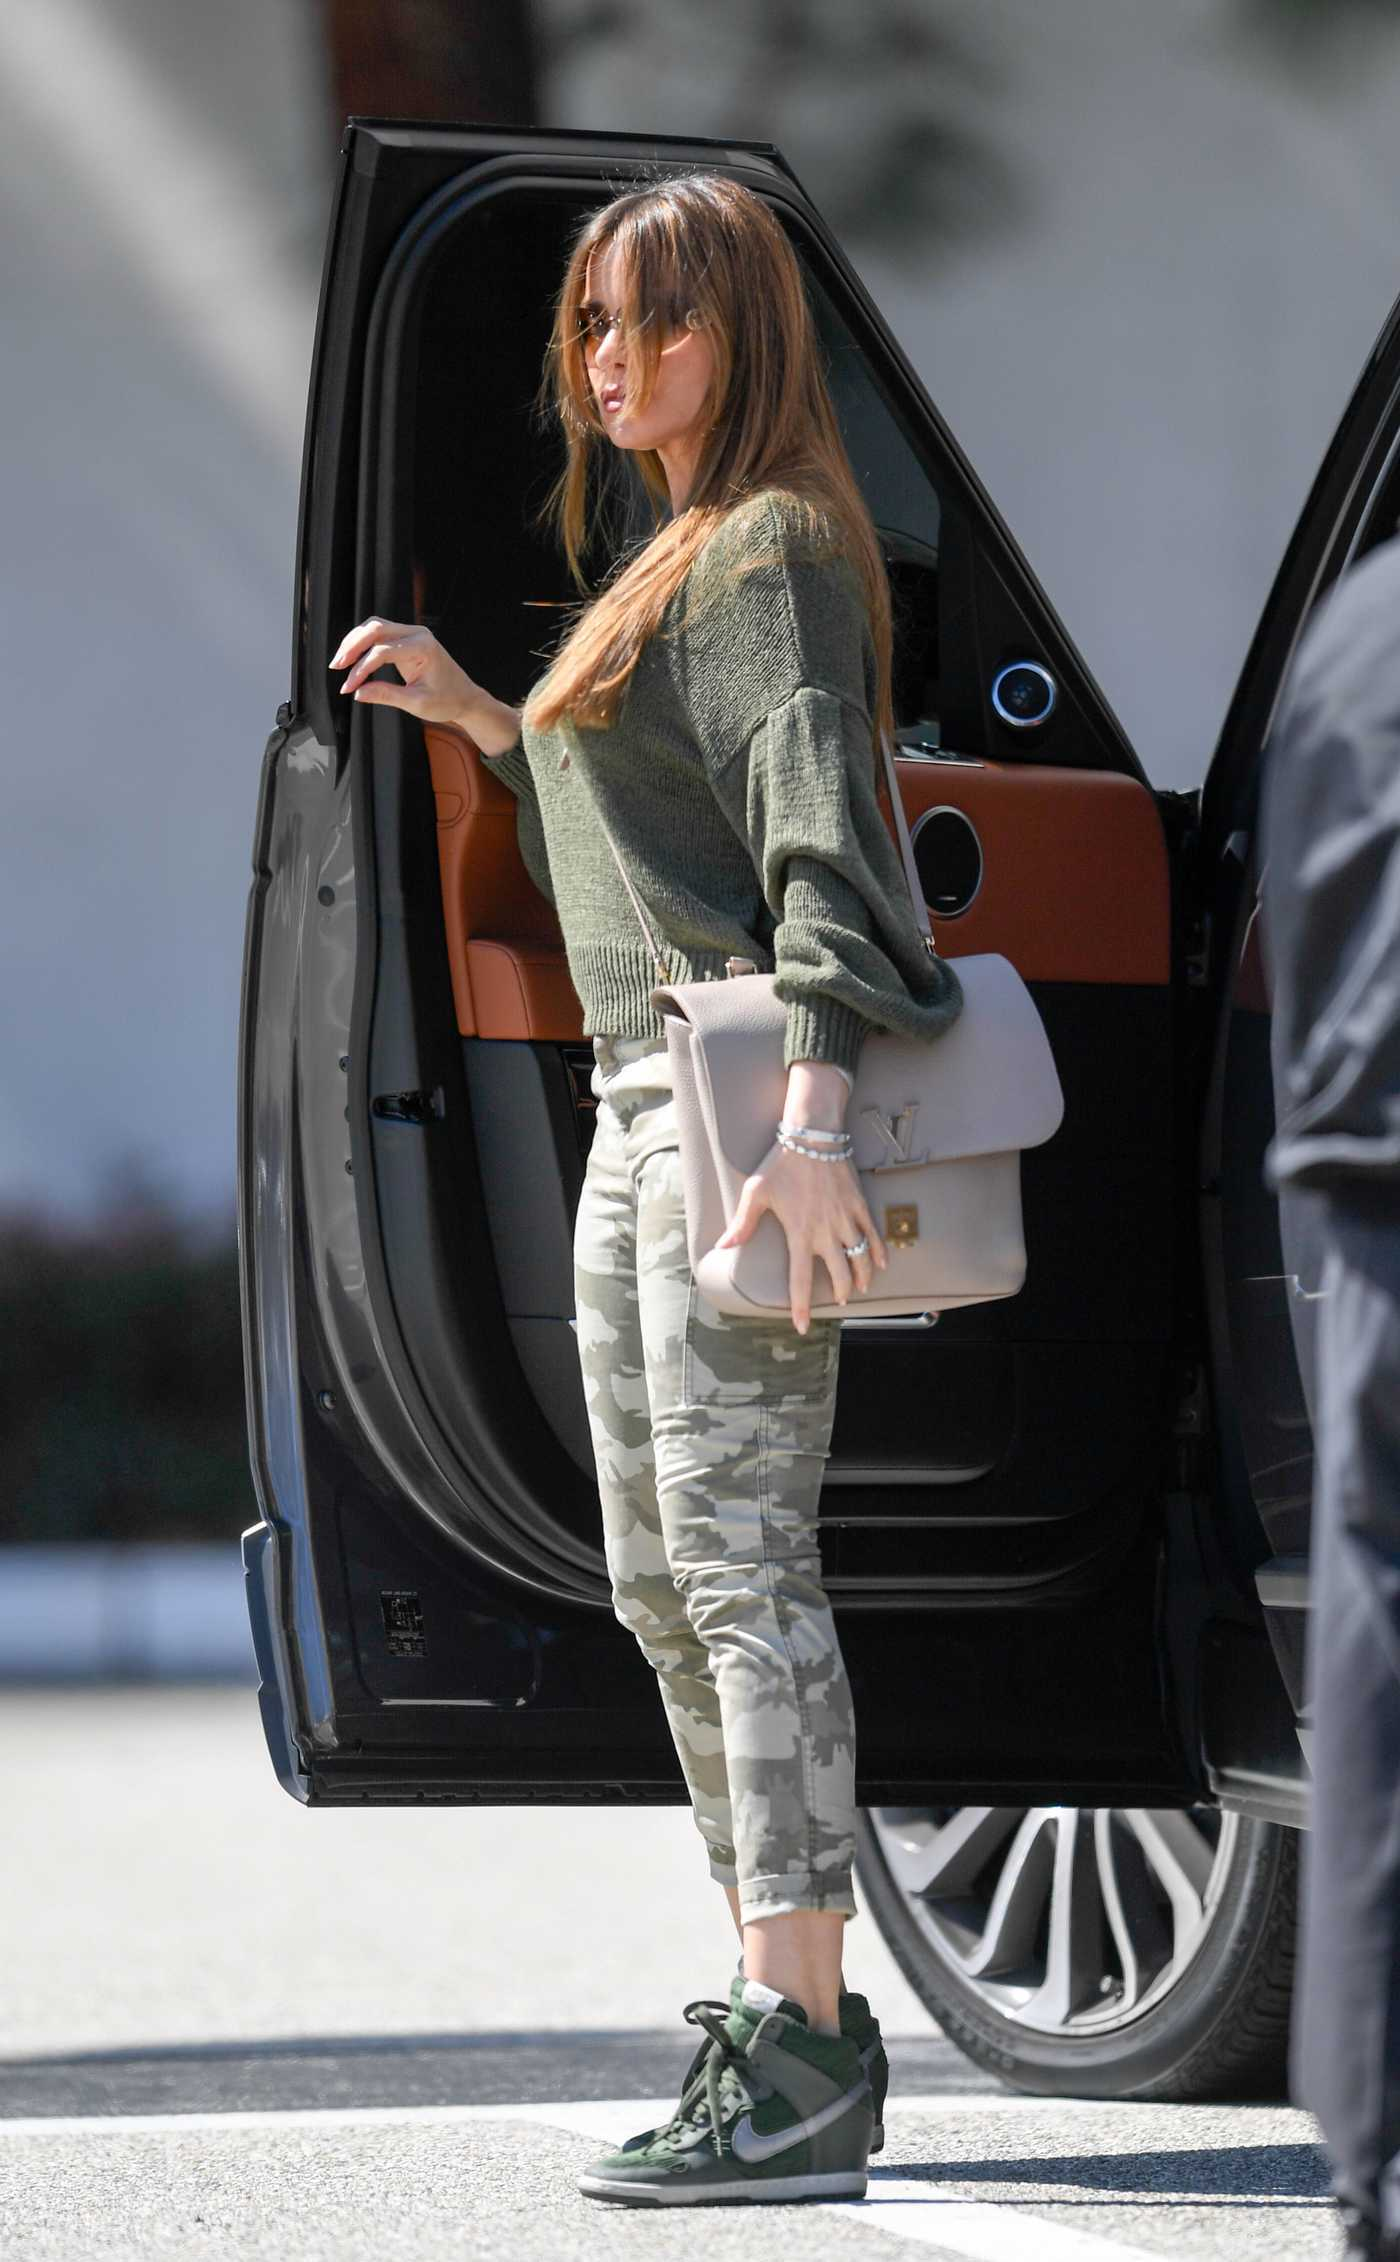 Sofia Vergara in a Gren Nike Sneakers Goes Shopping at Saks Fifth Avenue in Los Angeles 03/10/2019